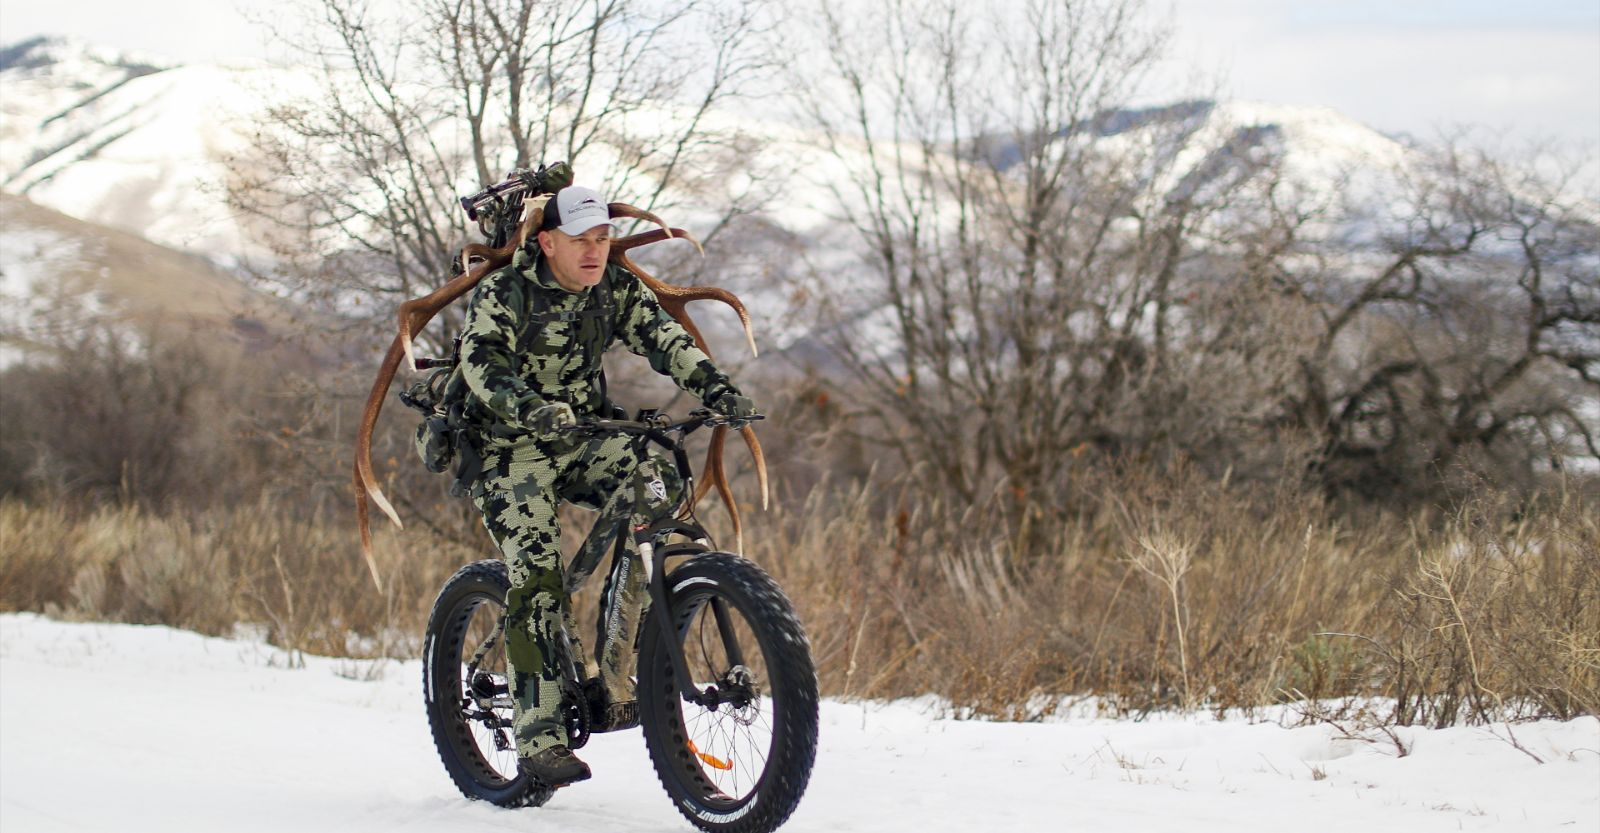 Bakcou Mule eBike Overview [Top 7 Features for Hunters]